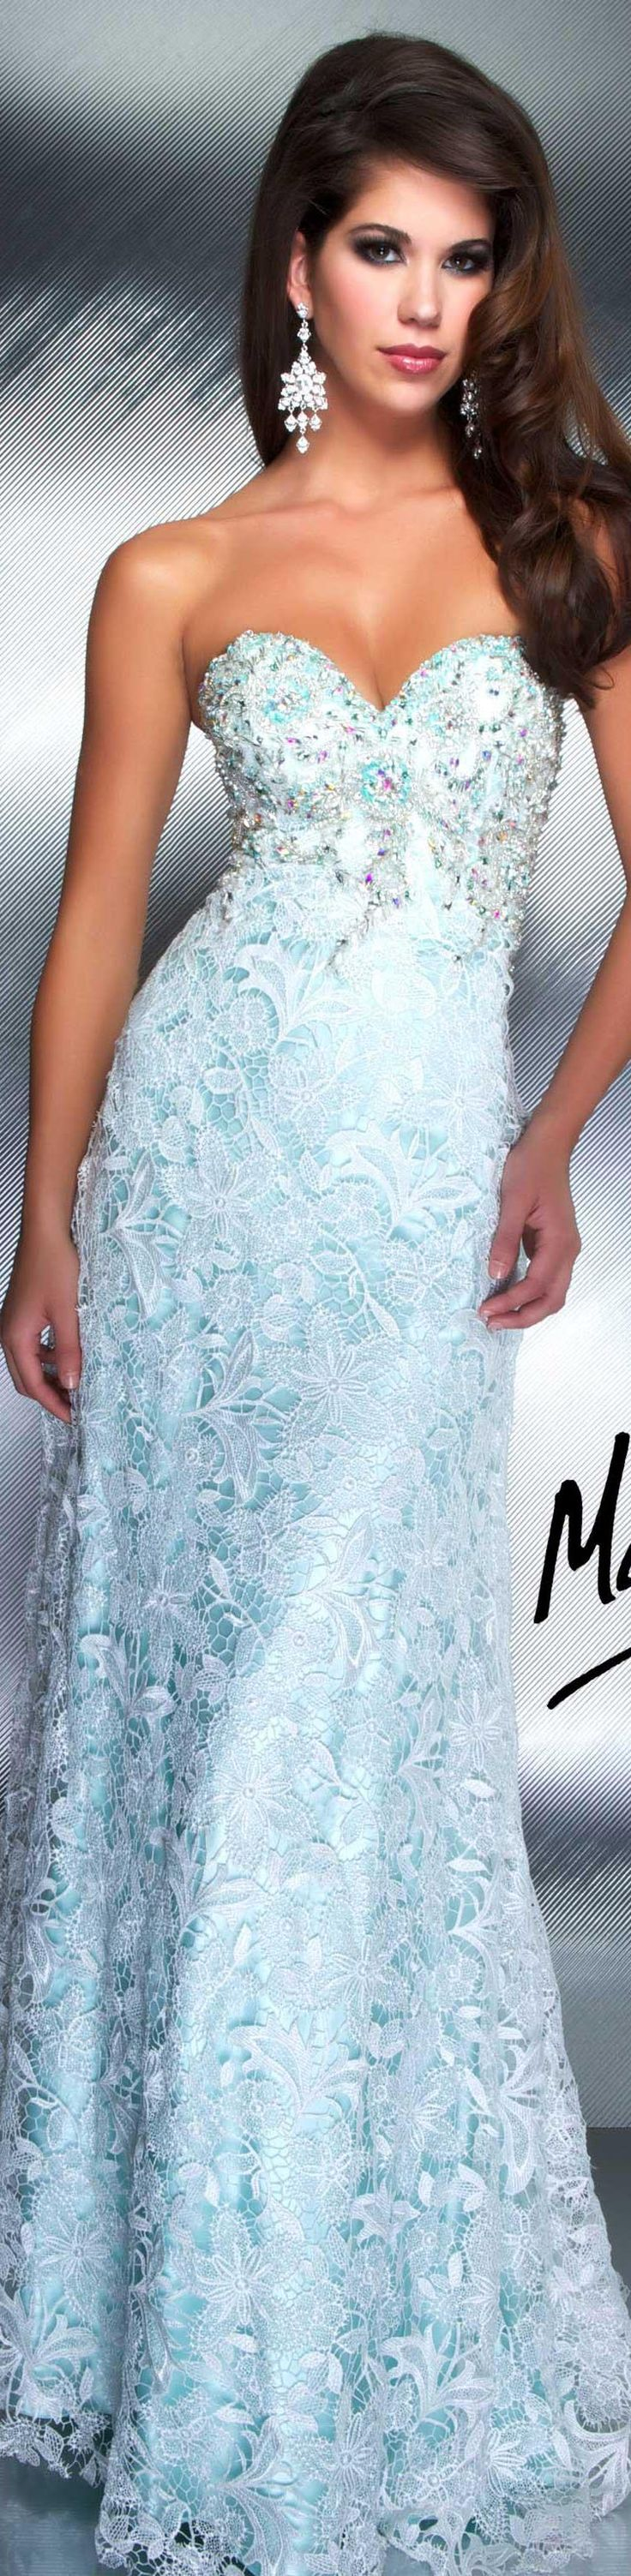 Mac Duggal couture dress mint COUTURE DRESSES  STYLE 78740D Absolutely love this!